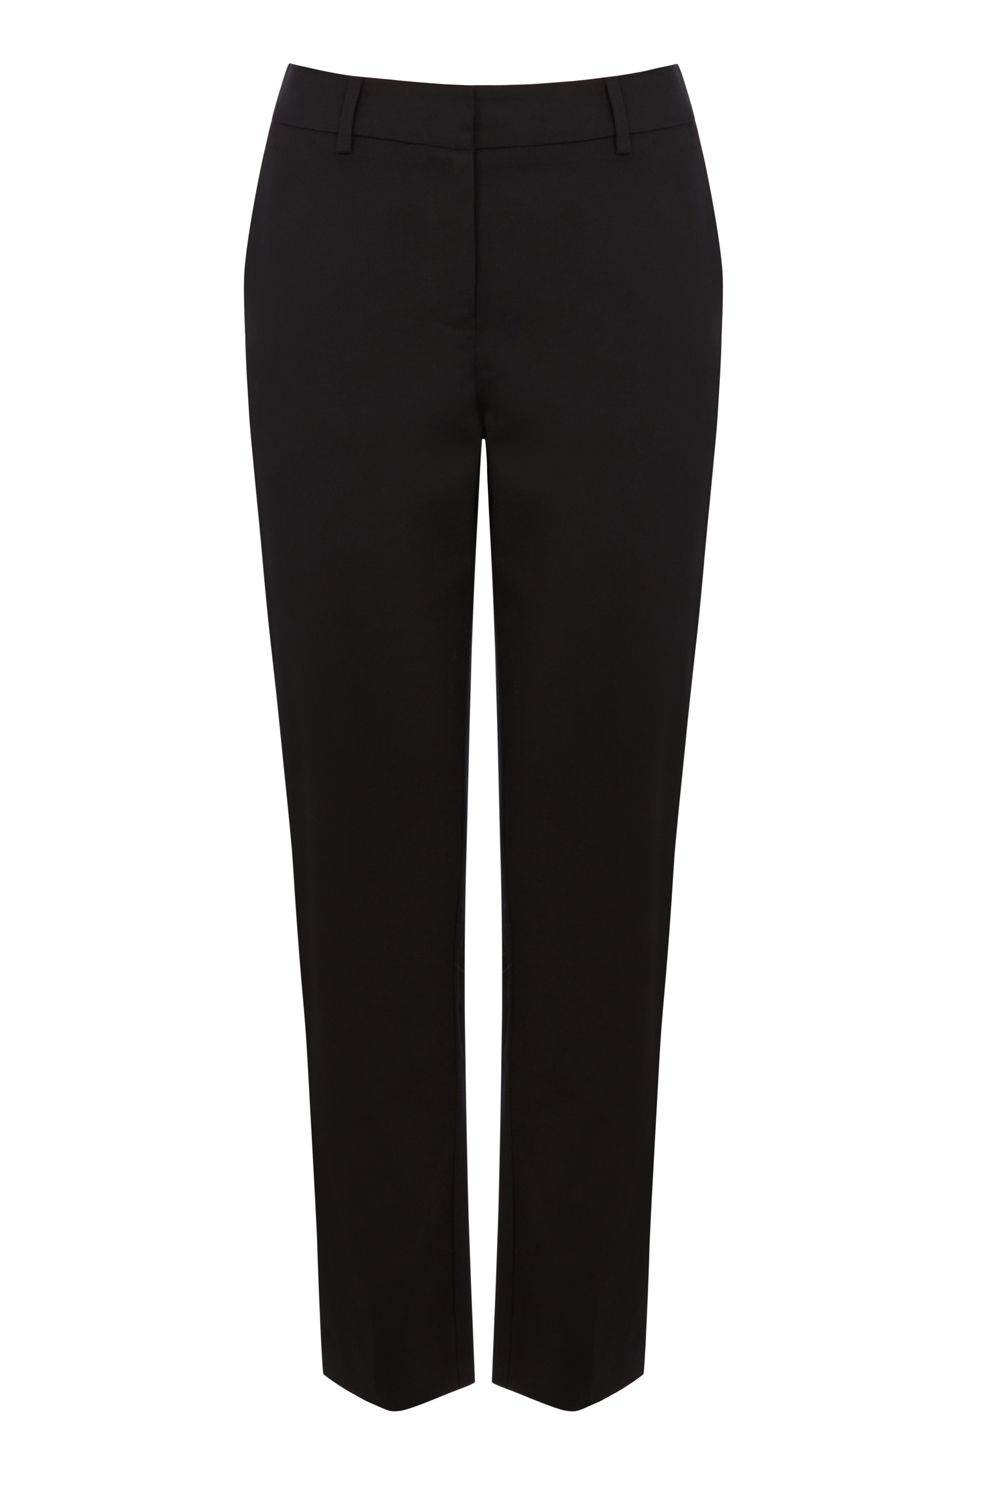 Warehouse Compact Cotton Trousers, Black